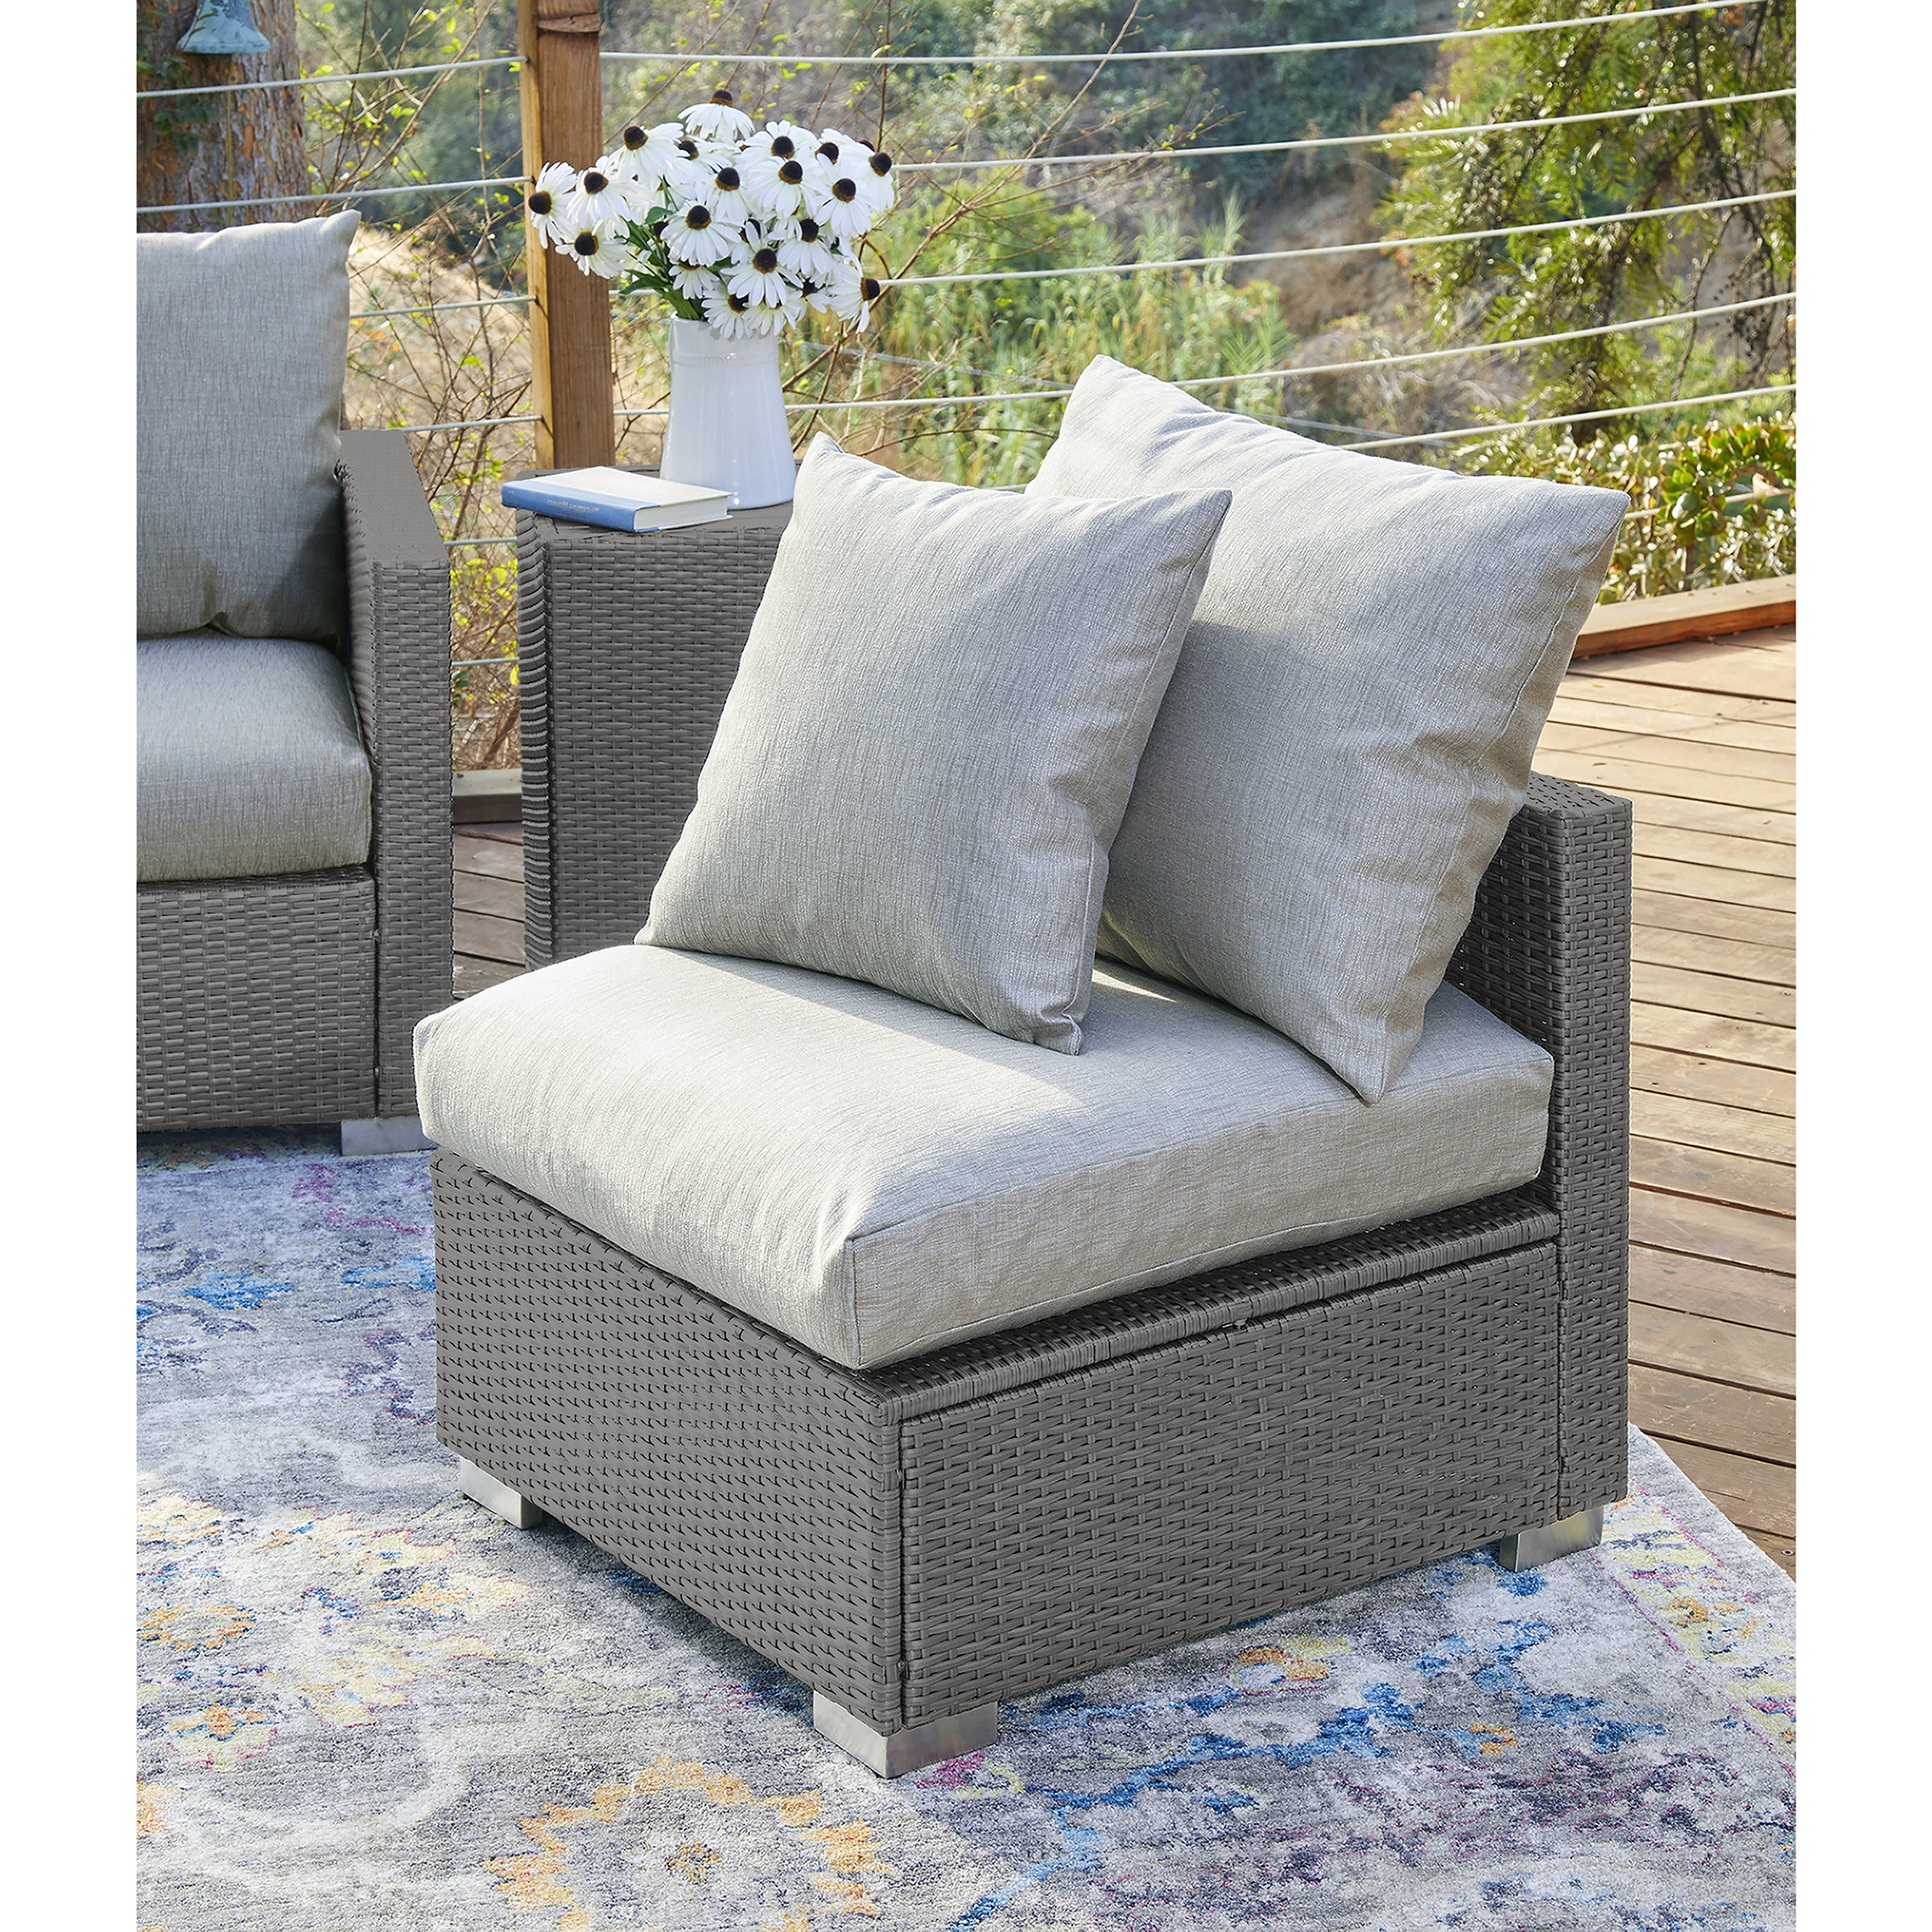 Mcmanis Patio Sofas With Cushion In Most Recently Released Mcmanis Outdoor Patio Chair With Cushions (View 10 of 20)